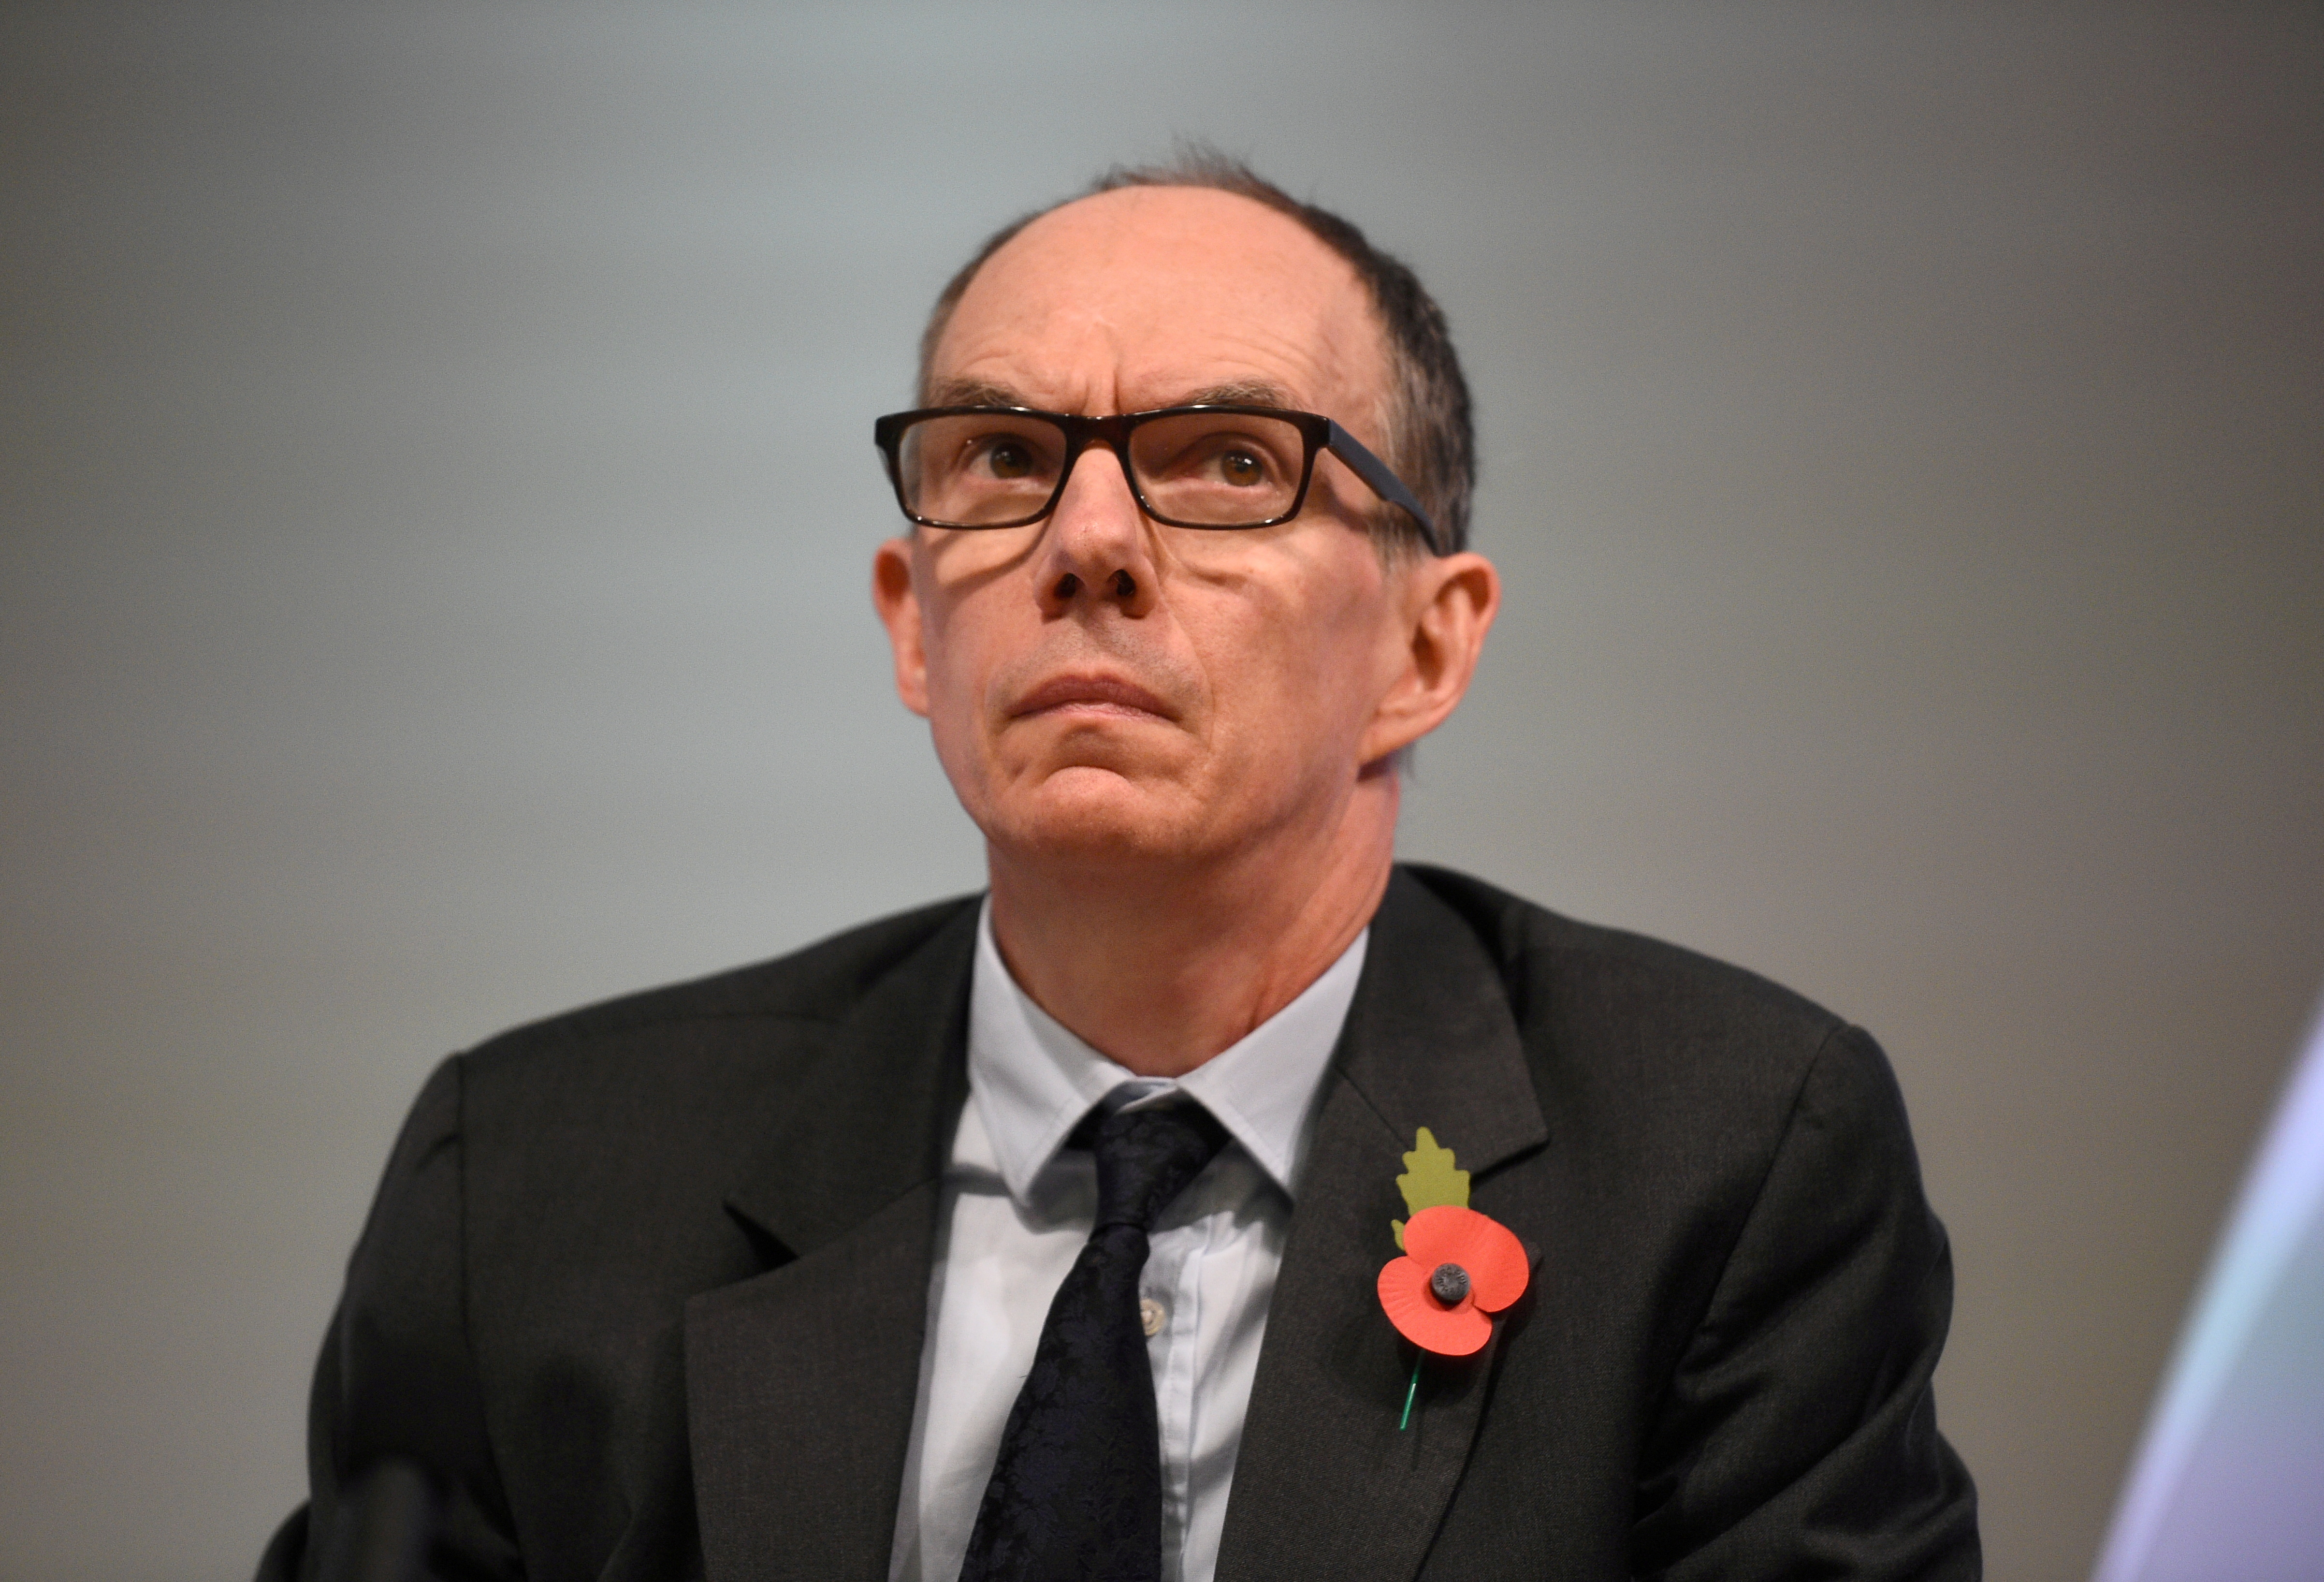 Bank of England Deputy Governor Dave Ramsden in the City of London, Britain November 1, 2018.   Kirsty O'Connor/Pool via REUTERS/File Photo